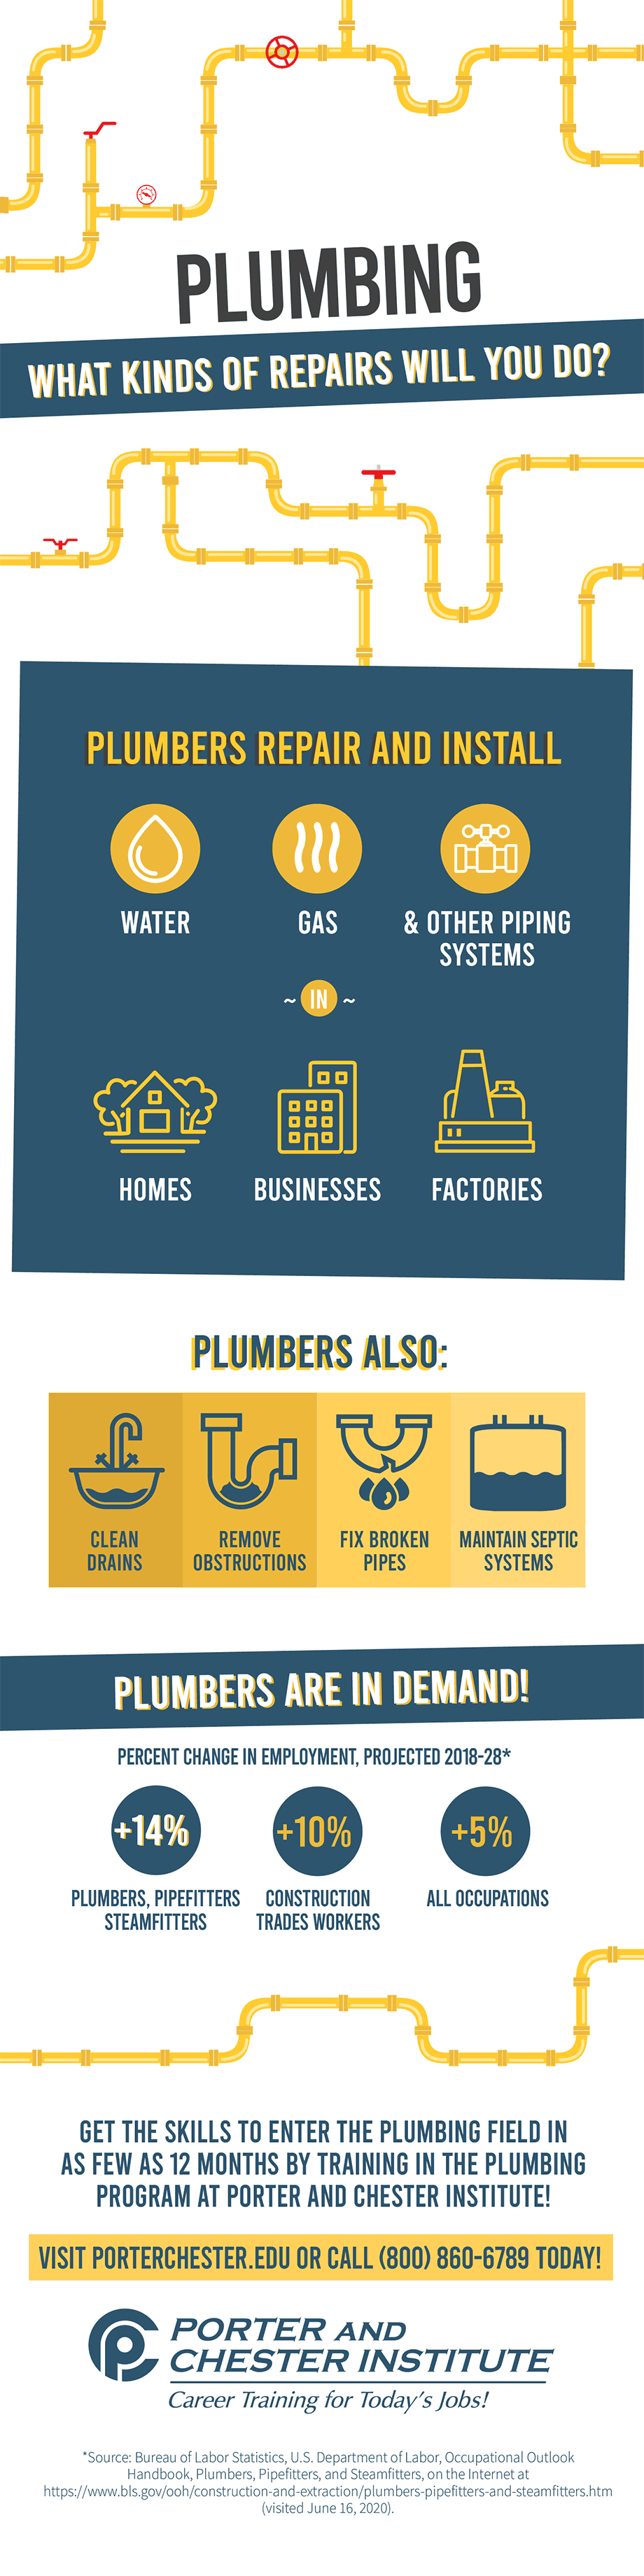 Plumbers: What Kinds of Repairs Will You Do? Infographic